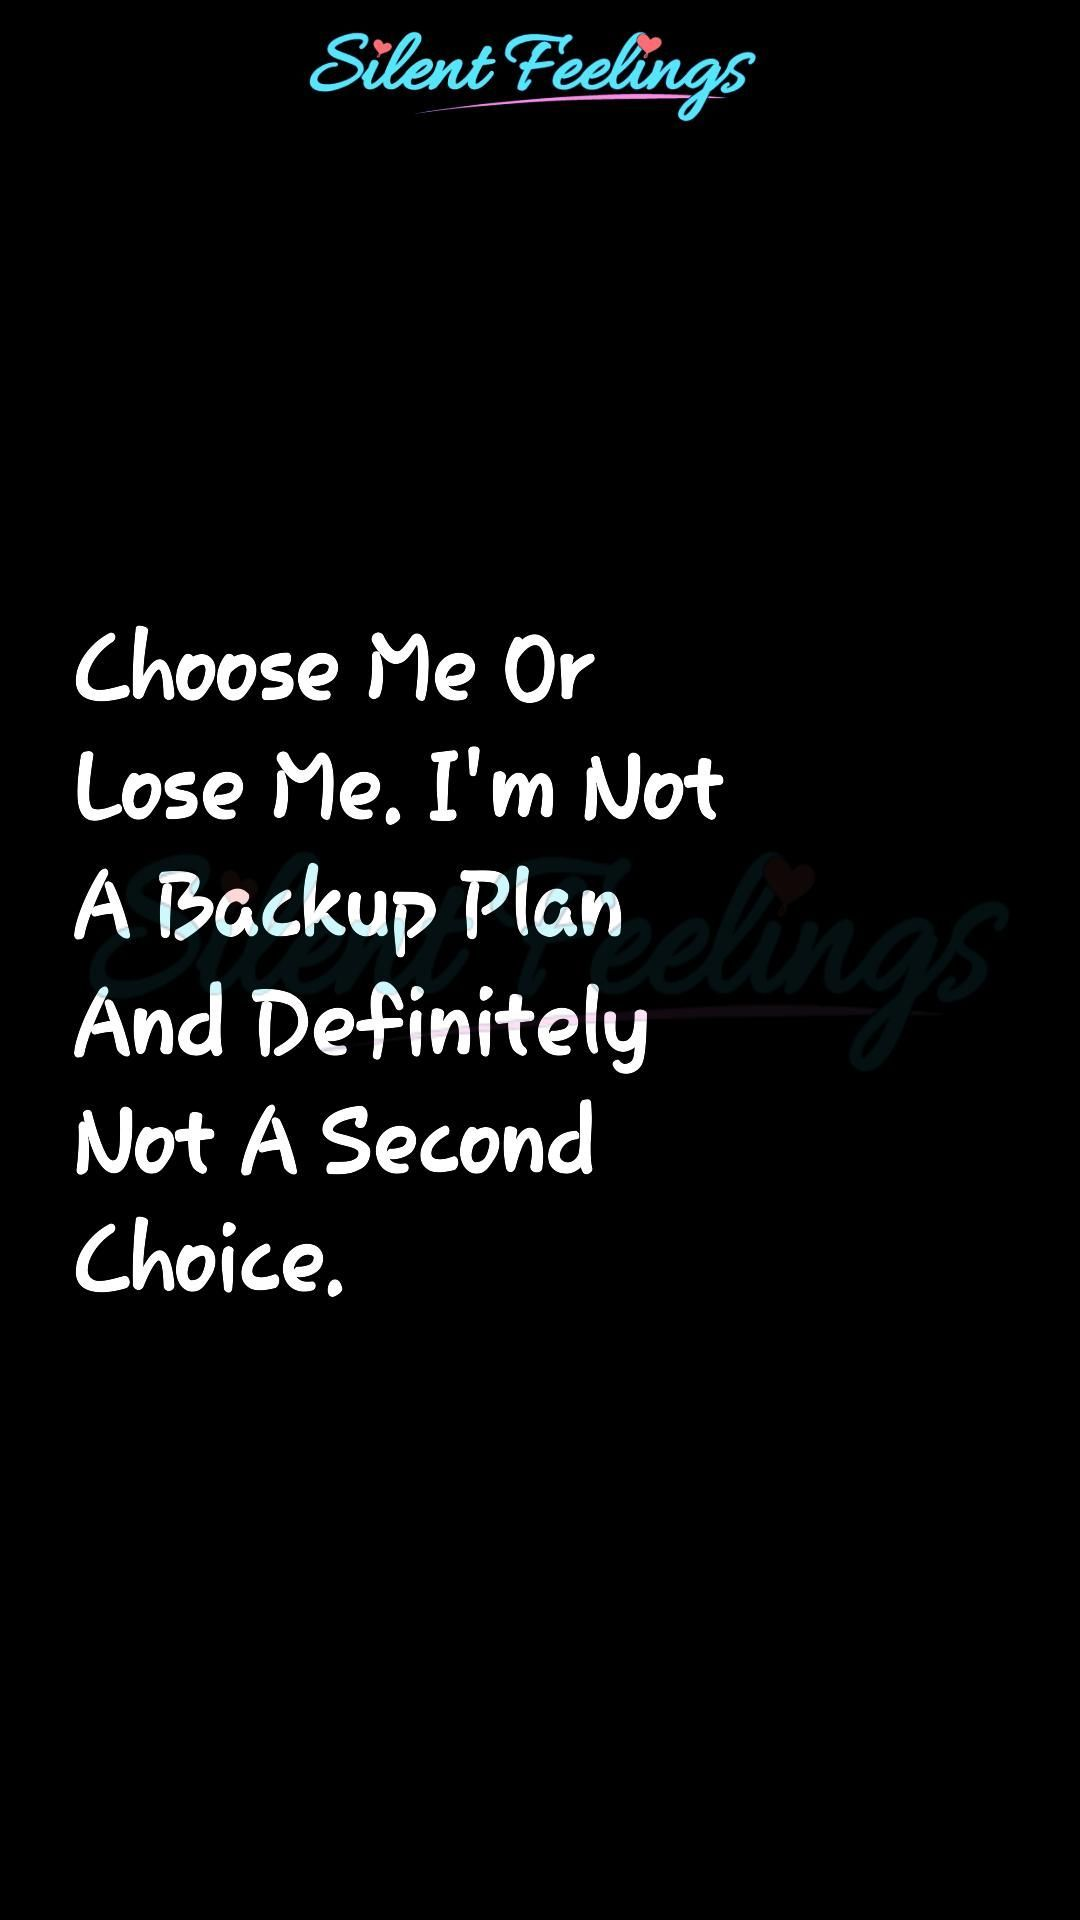 Choose Me Or Lose Me.   Love Quotes Videos   Silent Feelings